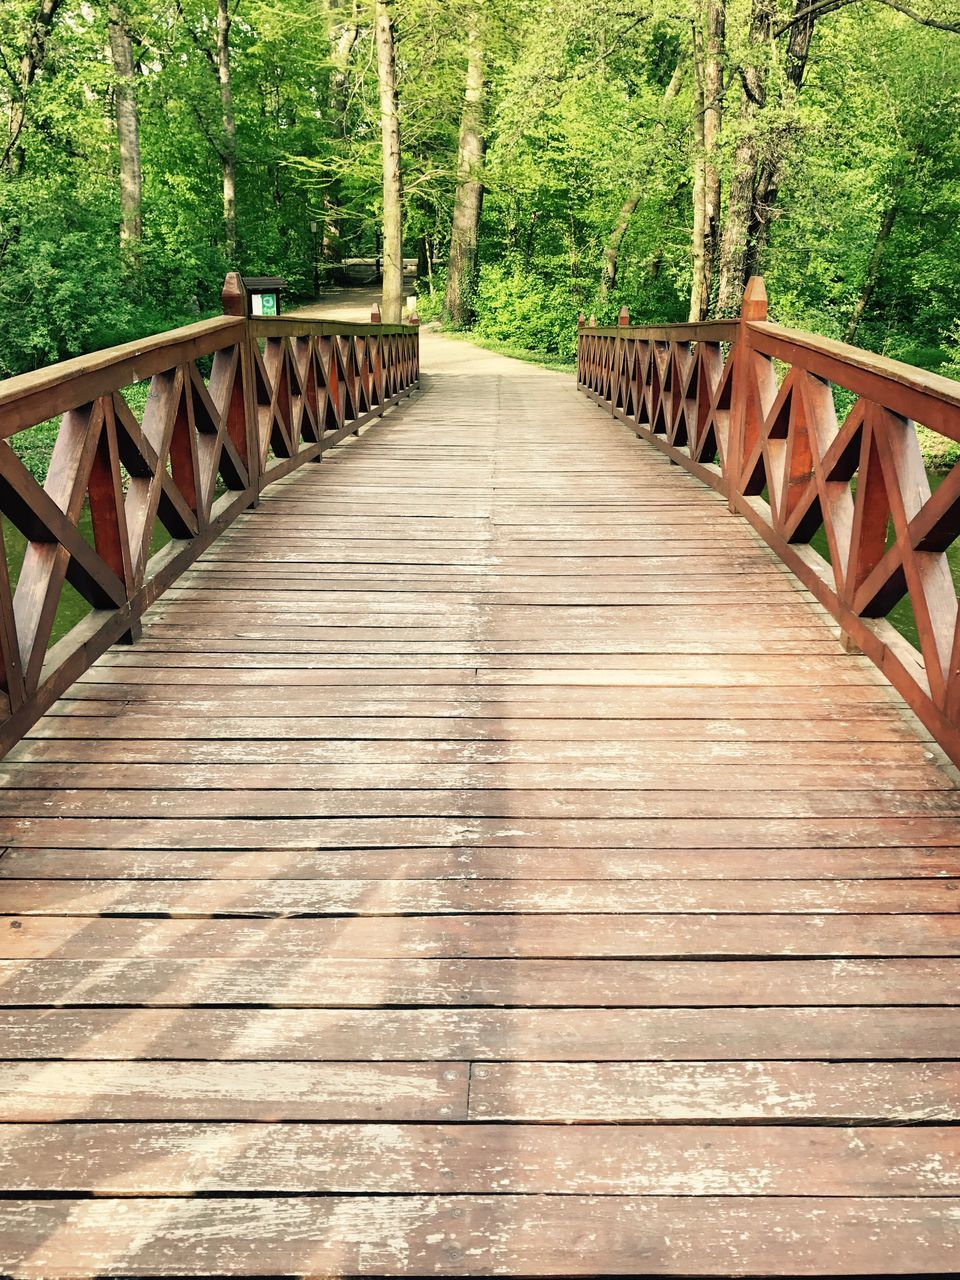 tree, wood - material, railing, the way forward, nature, forest, footbridge, tranquil scene, day, wood paneling, outdoors, bridge - man made structure, tranquility, beauty in nature, no people, growth